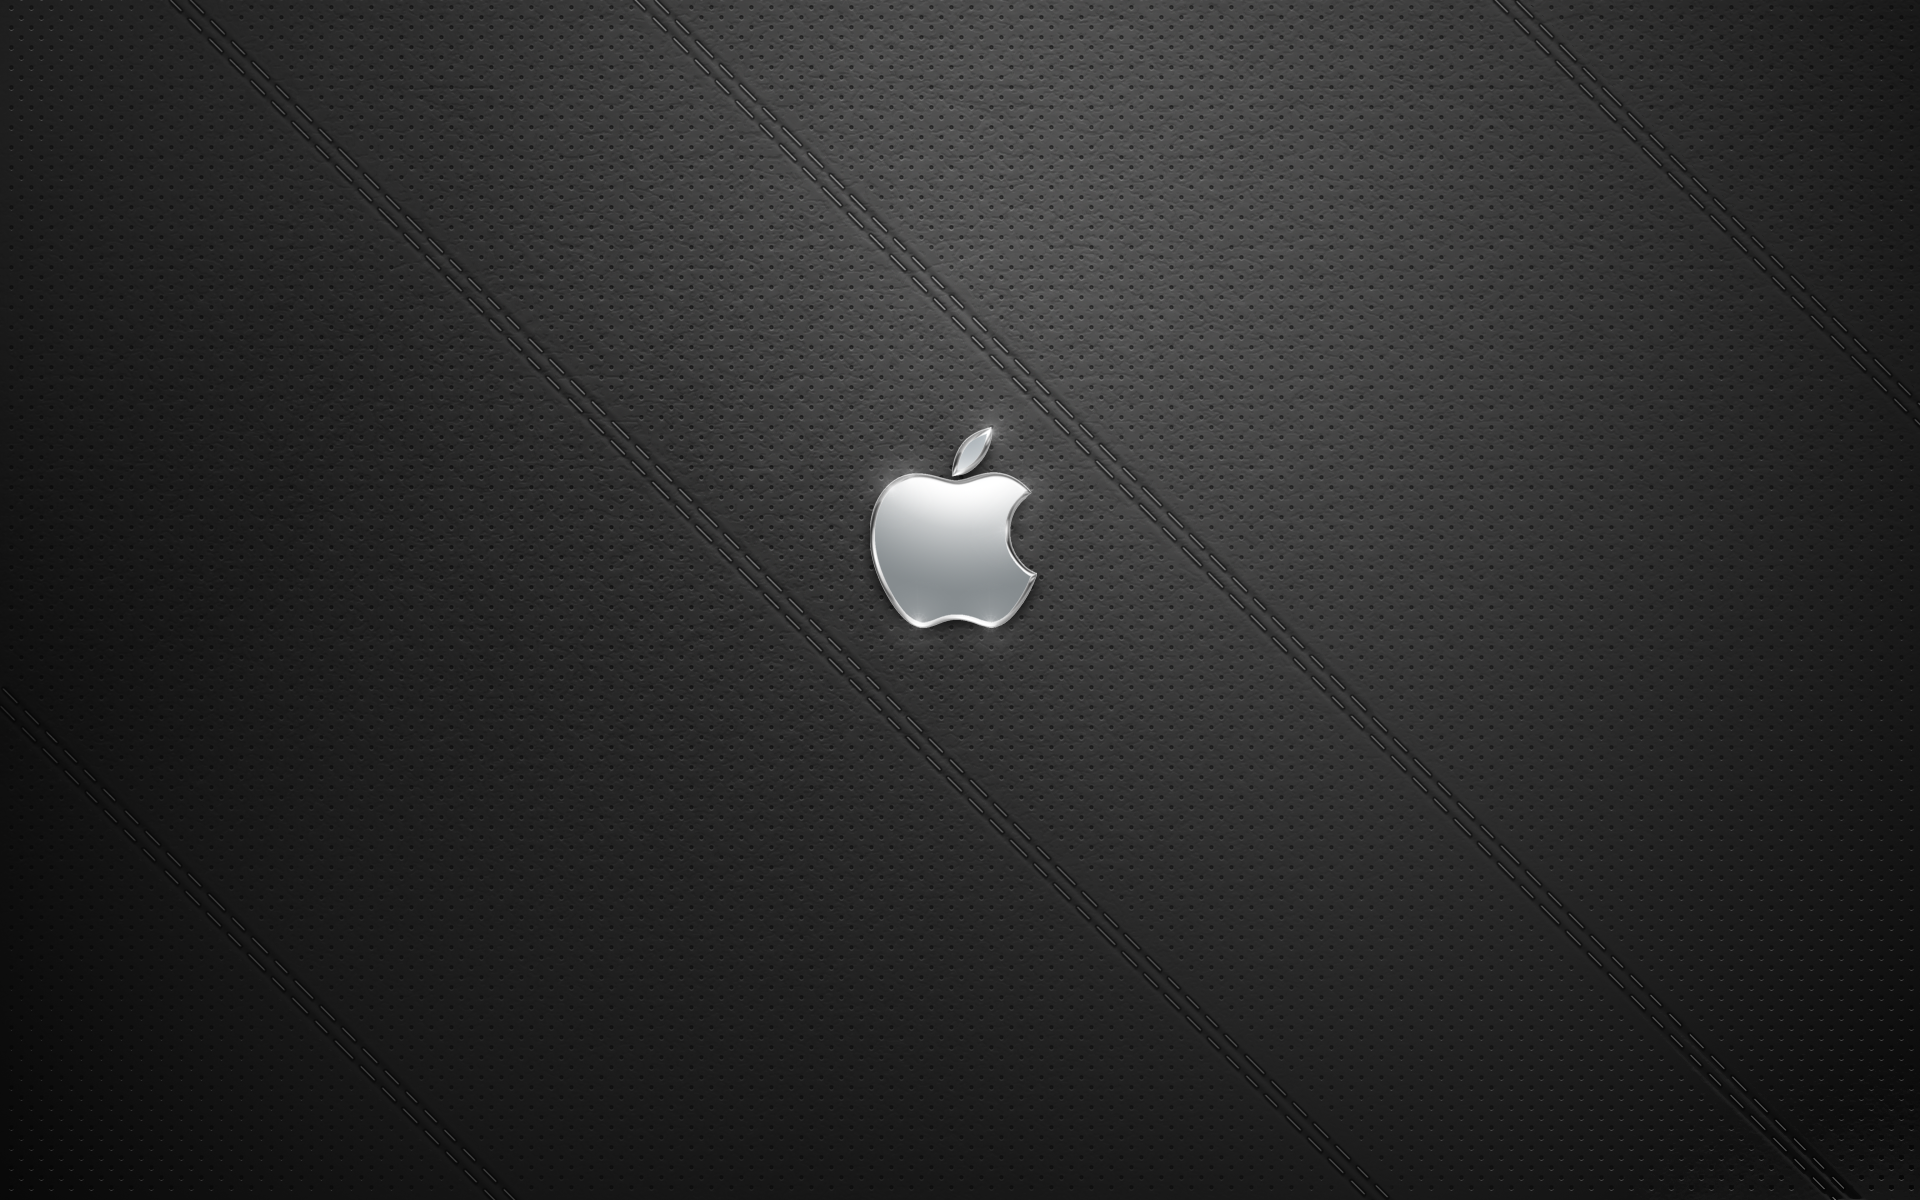 The Art of Adam Betts Black Leather Apple Desktop Background 1920x1200